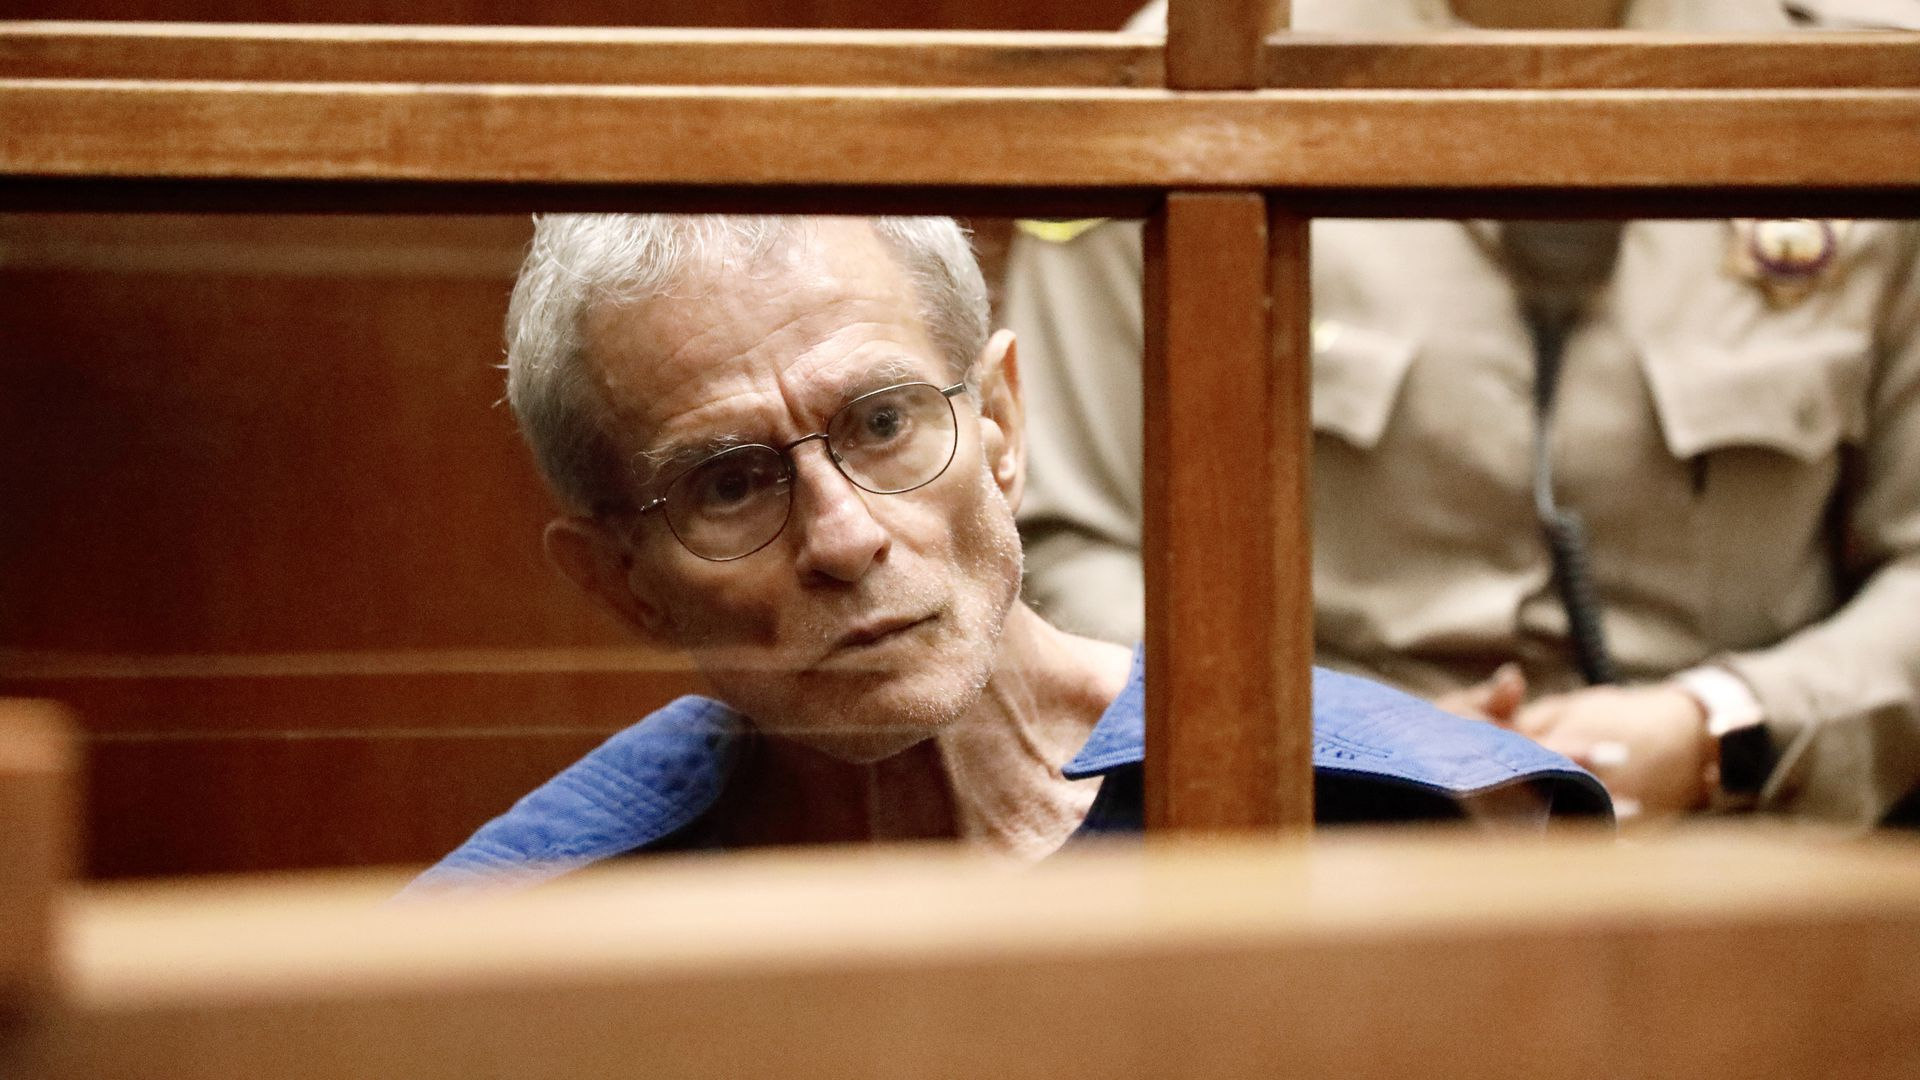 Prominent Democratic Party donor Ed Buck appears in court Thursday, September 19